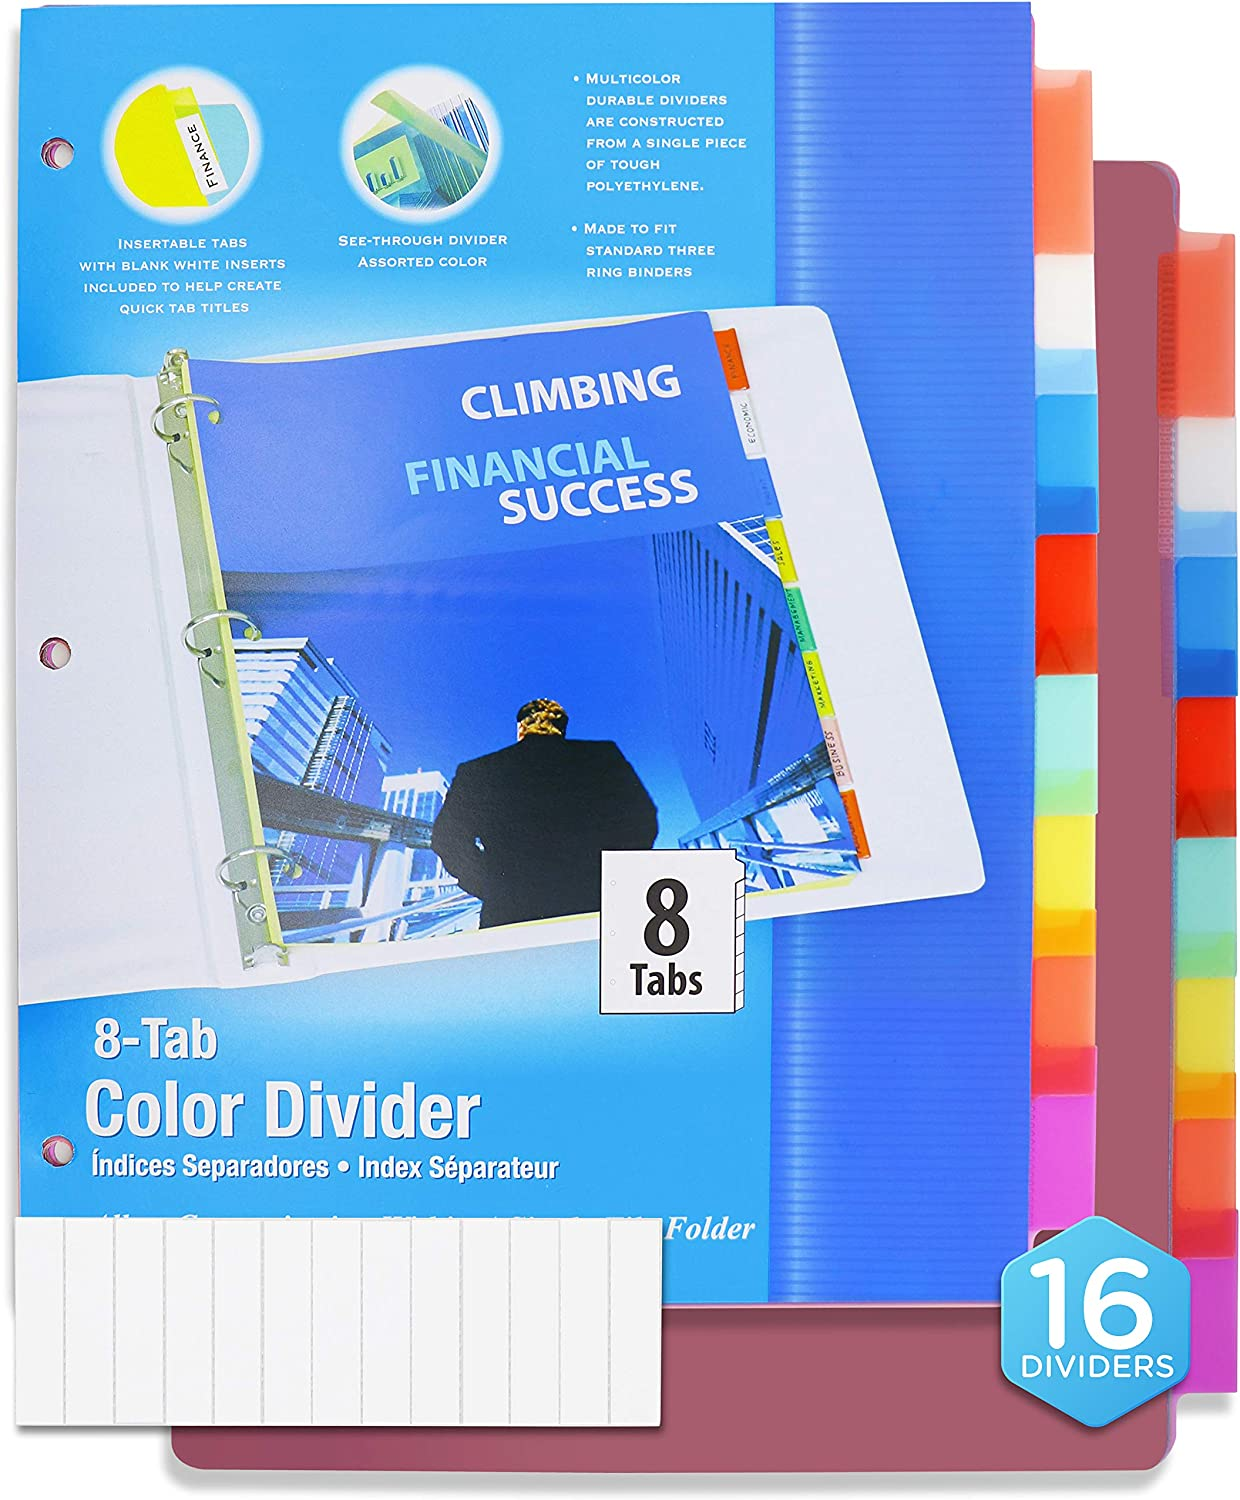 3 Ring Binder Dividers with 8 Insertable Color Tabs, Helps to Organize Documents in Single File Folder, Perfect for School, College, Kids and Adults - by Emraw (Pack of 16)